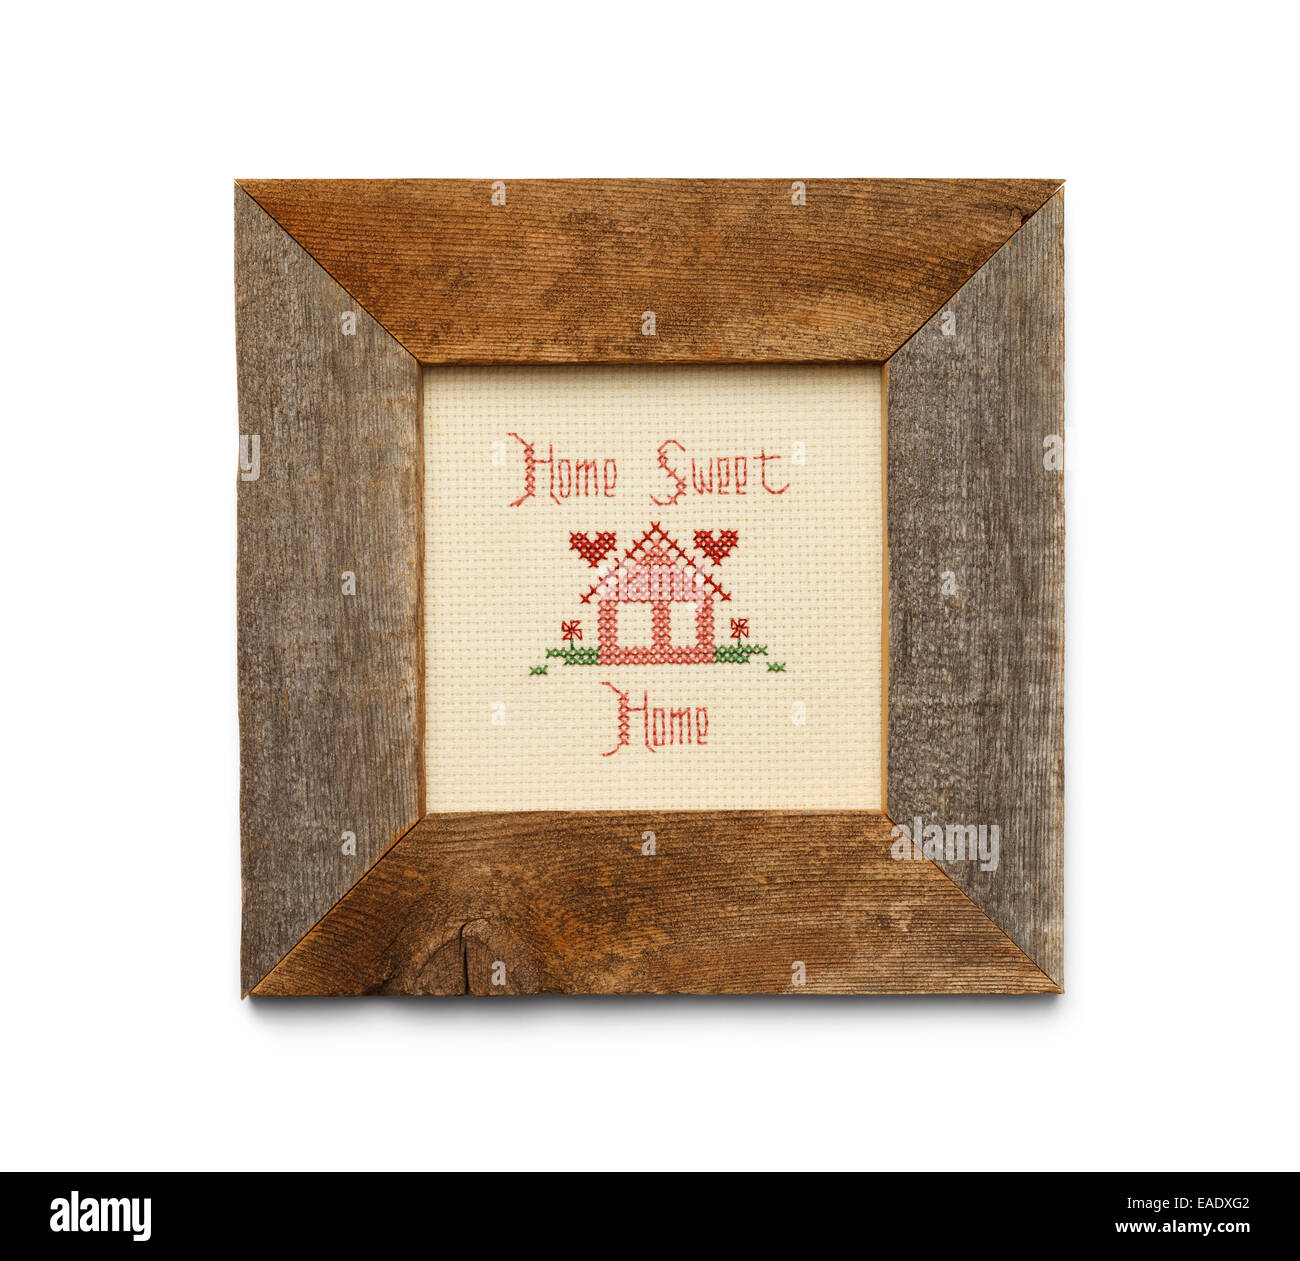 Home Sweet Home Cross Stitch in Square Wood Frame Isolated on White Background. Stock Photo